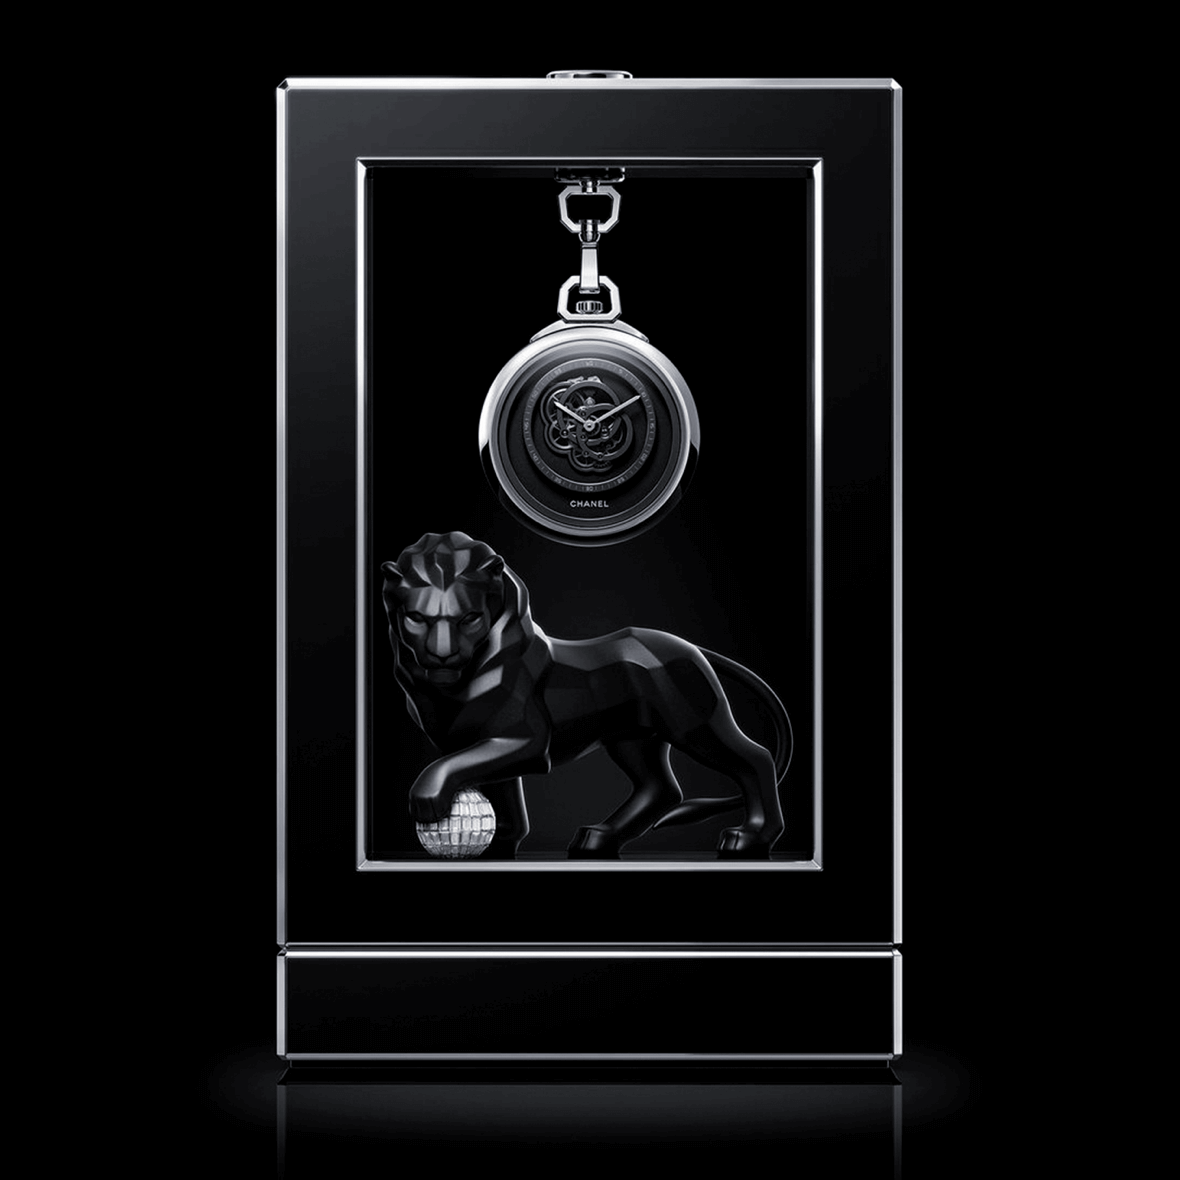 H5822 SPECIAL-EDITION MONSIEUR pocket watch